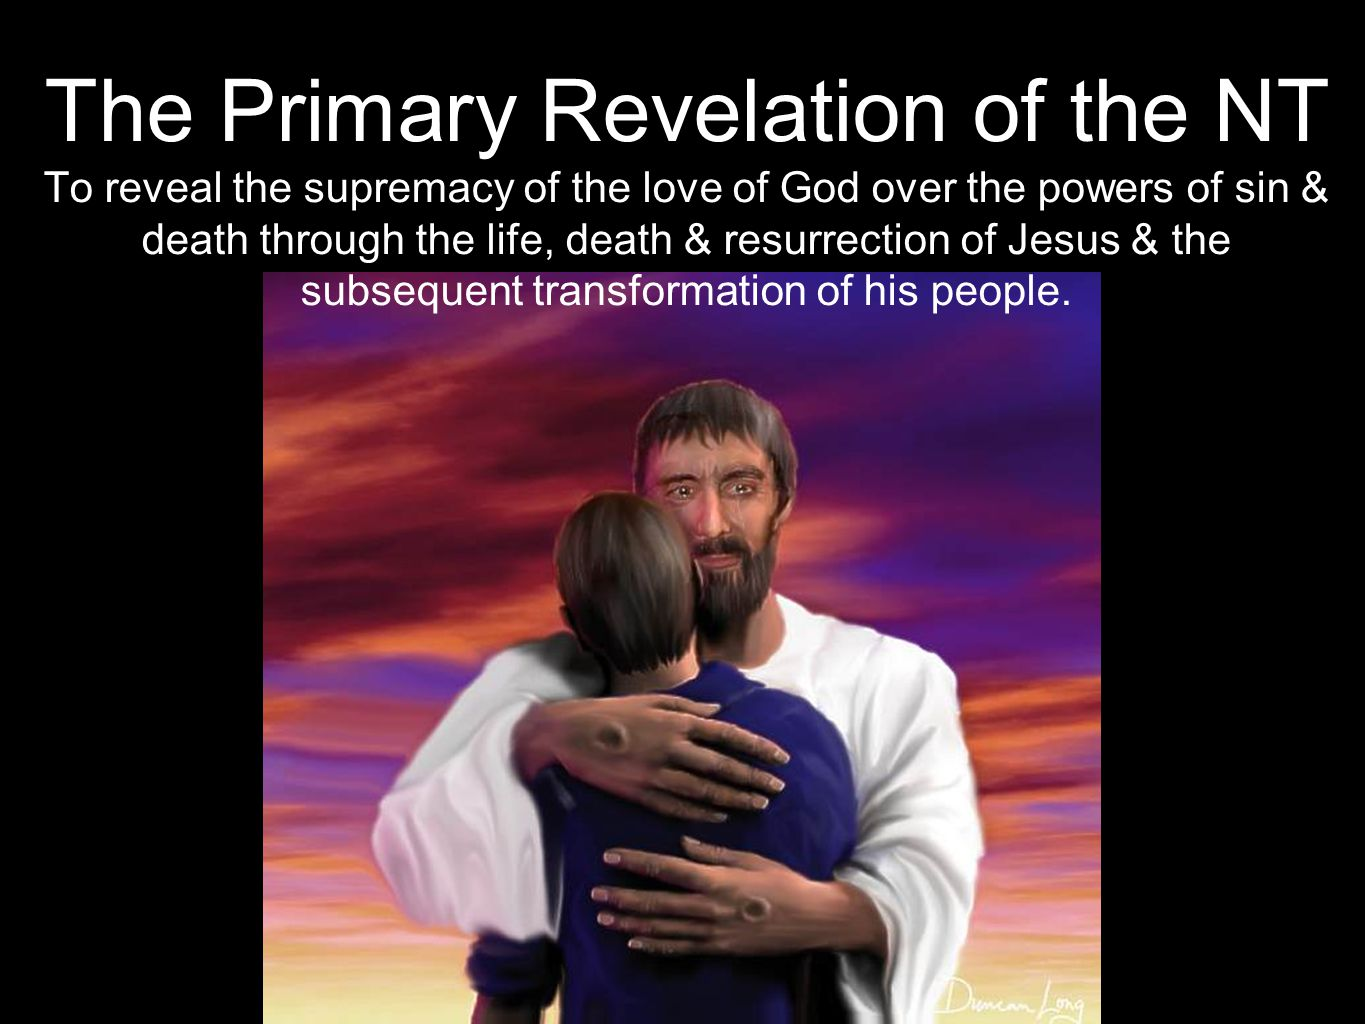 The Primary Revelation of the NT To reveal the supremacy of the love of God over the powers of sin & death through the life, death & resurrection of Jesus & the subsequent transformation of his people.